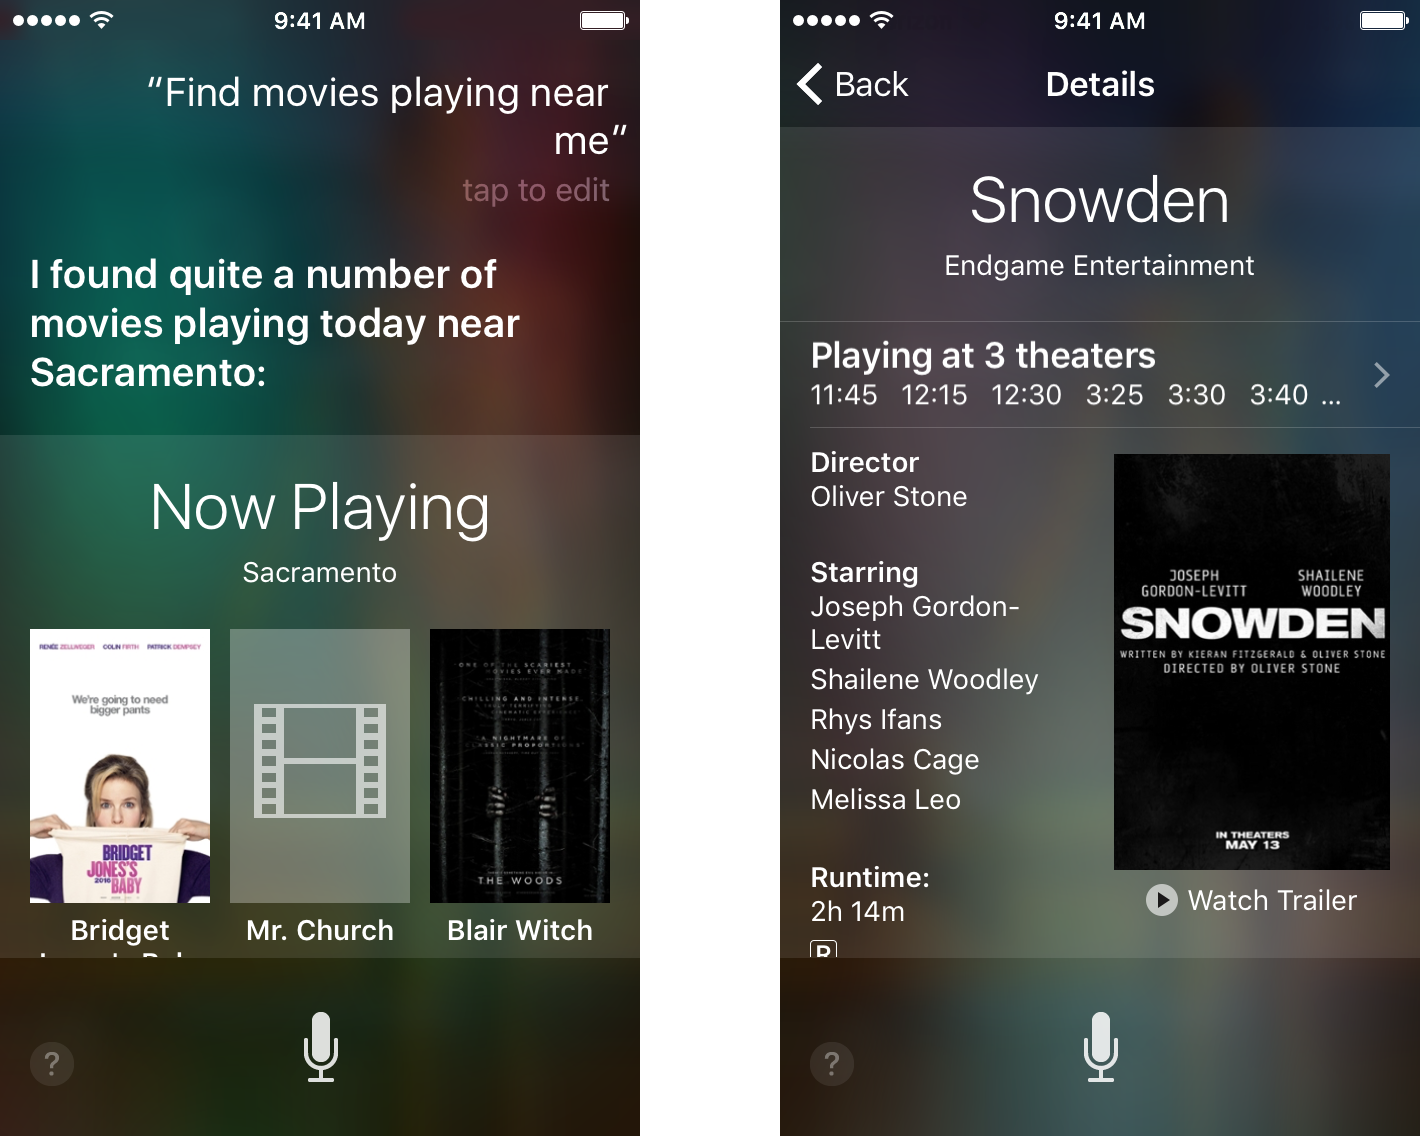 Ask Siri what movies are playing nearby